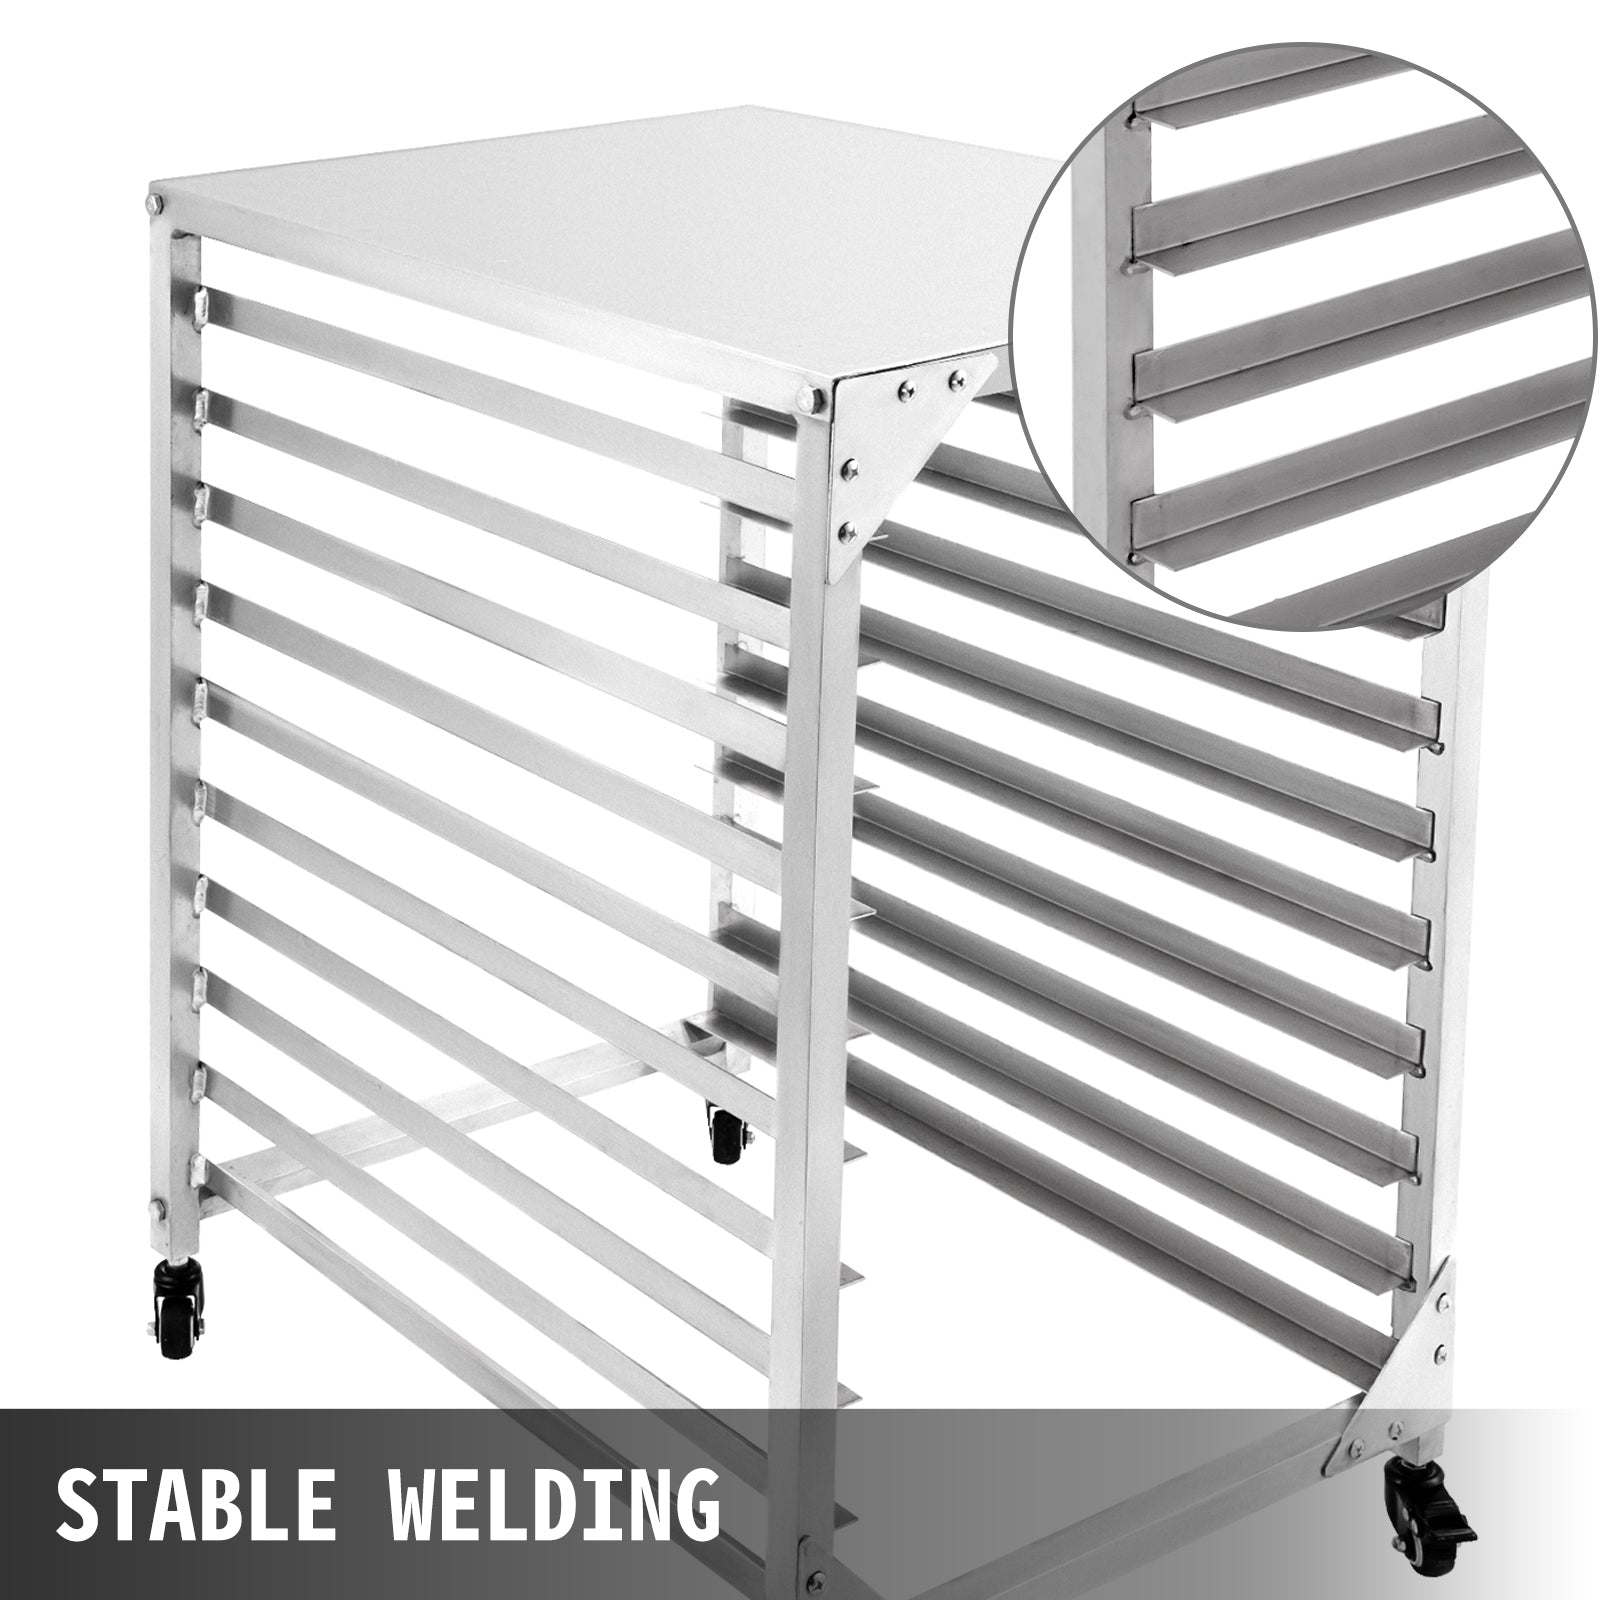 Bun Pan Rack Bakery Rack 10-tier Aluminum Kitchen Bakery Cooling Rack W/ Cover